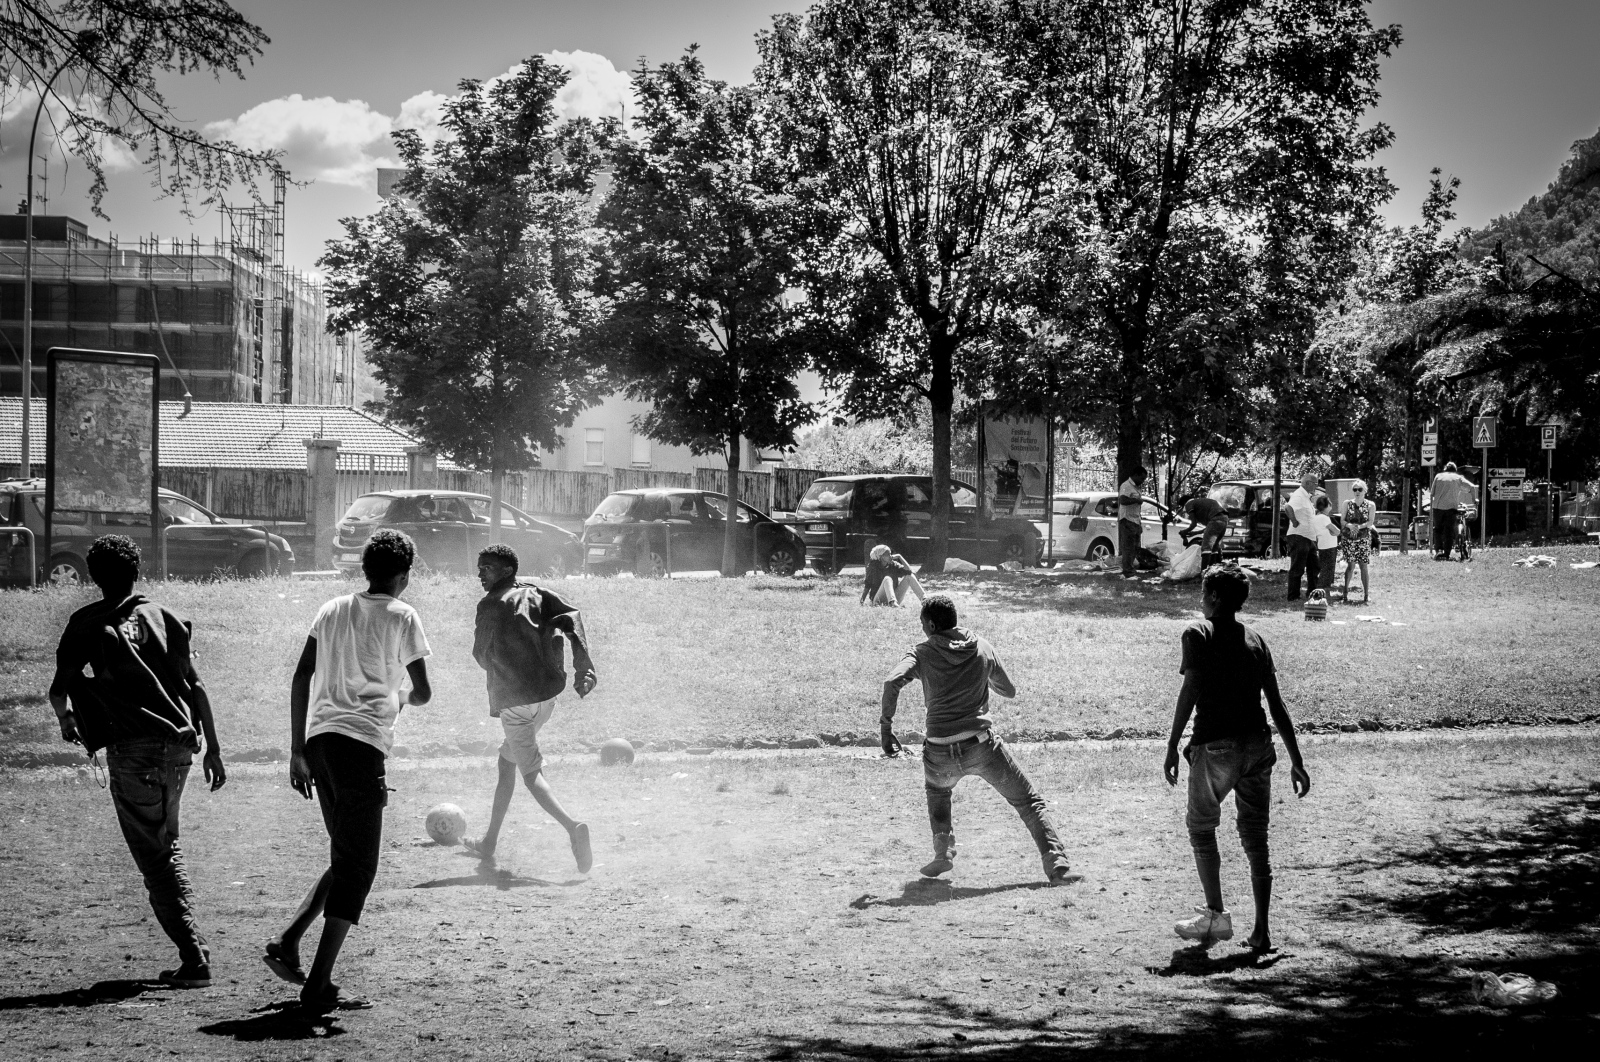 A football match between migrants provides momentary respite in the face of numerous hardships.